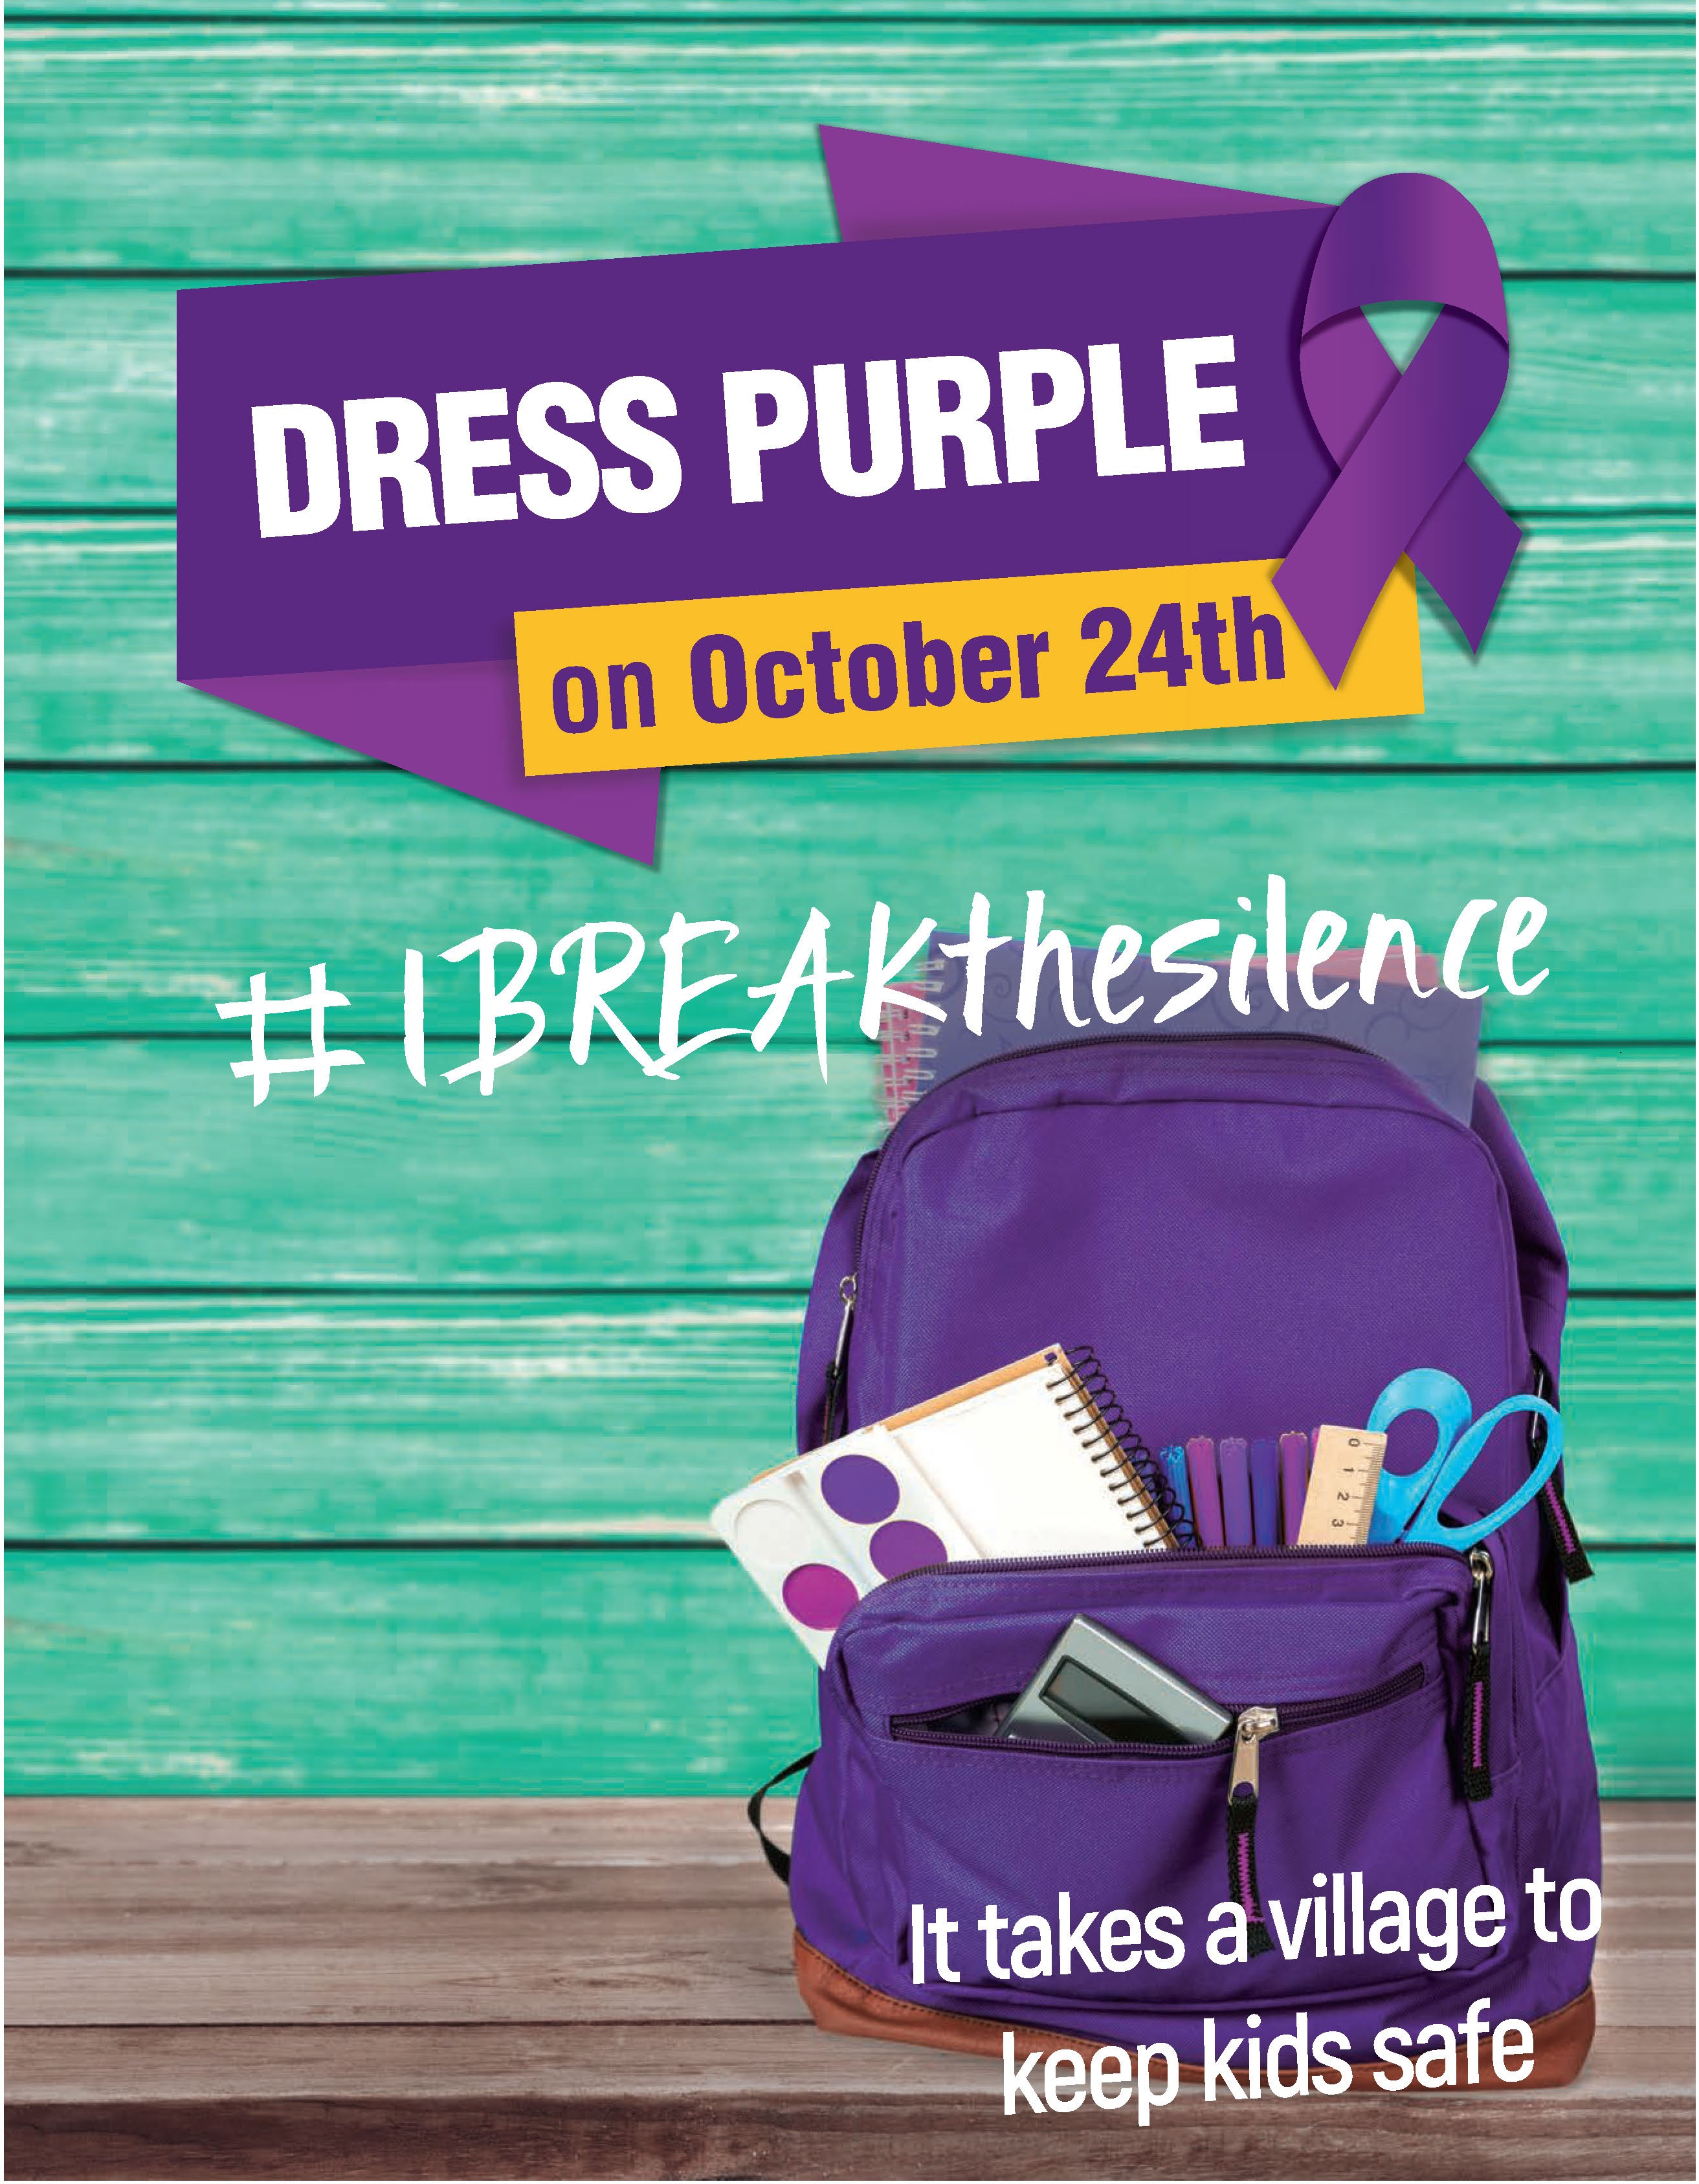 Dress Purple on October 24th. #IBREAKthesilence. It takes a village to keep kids safe.